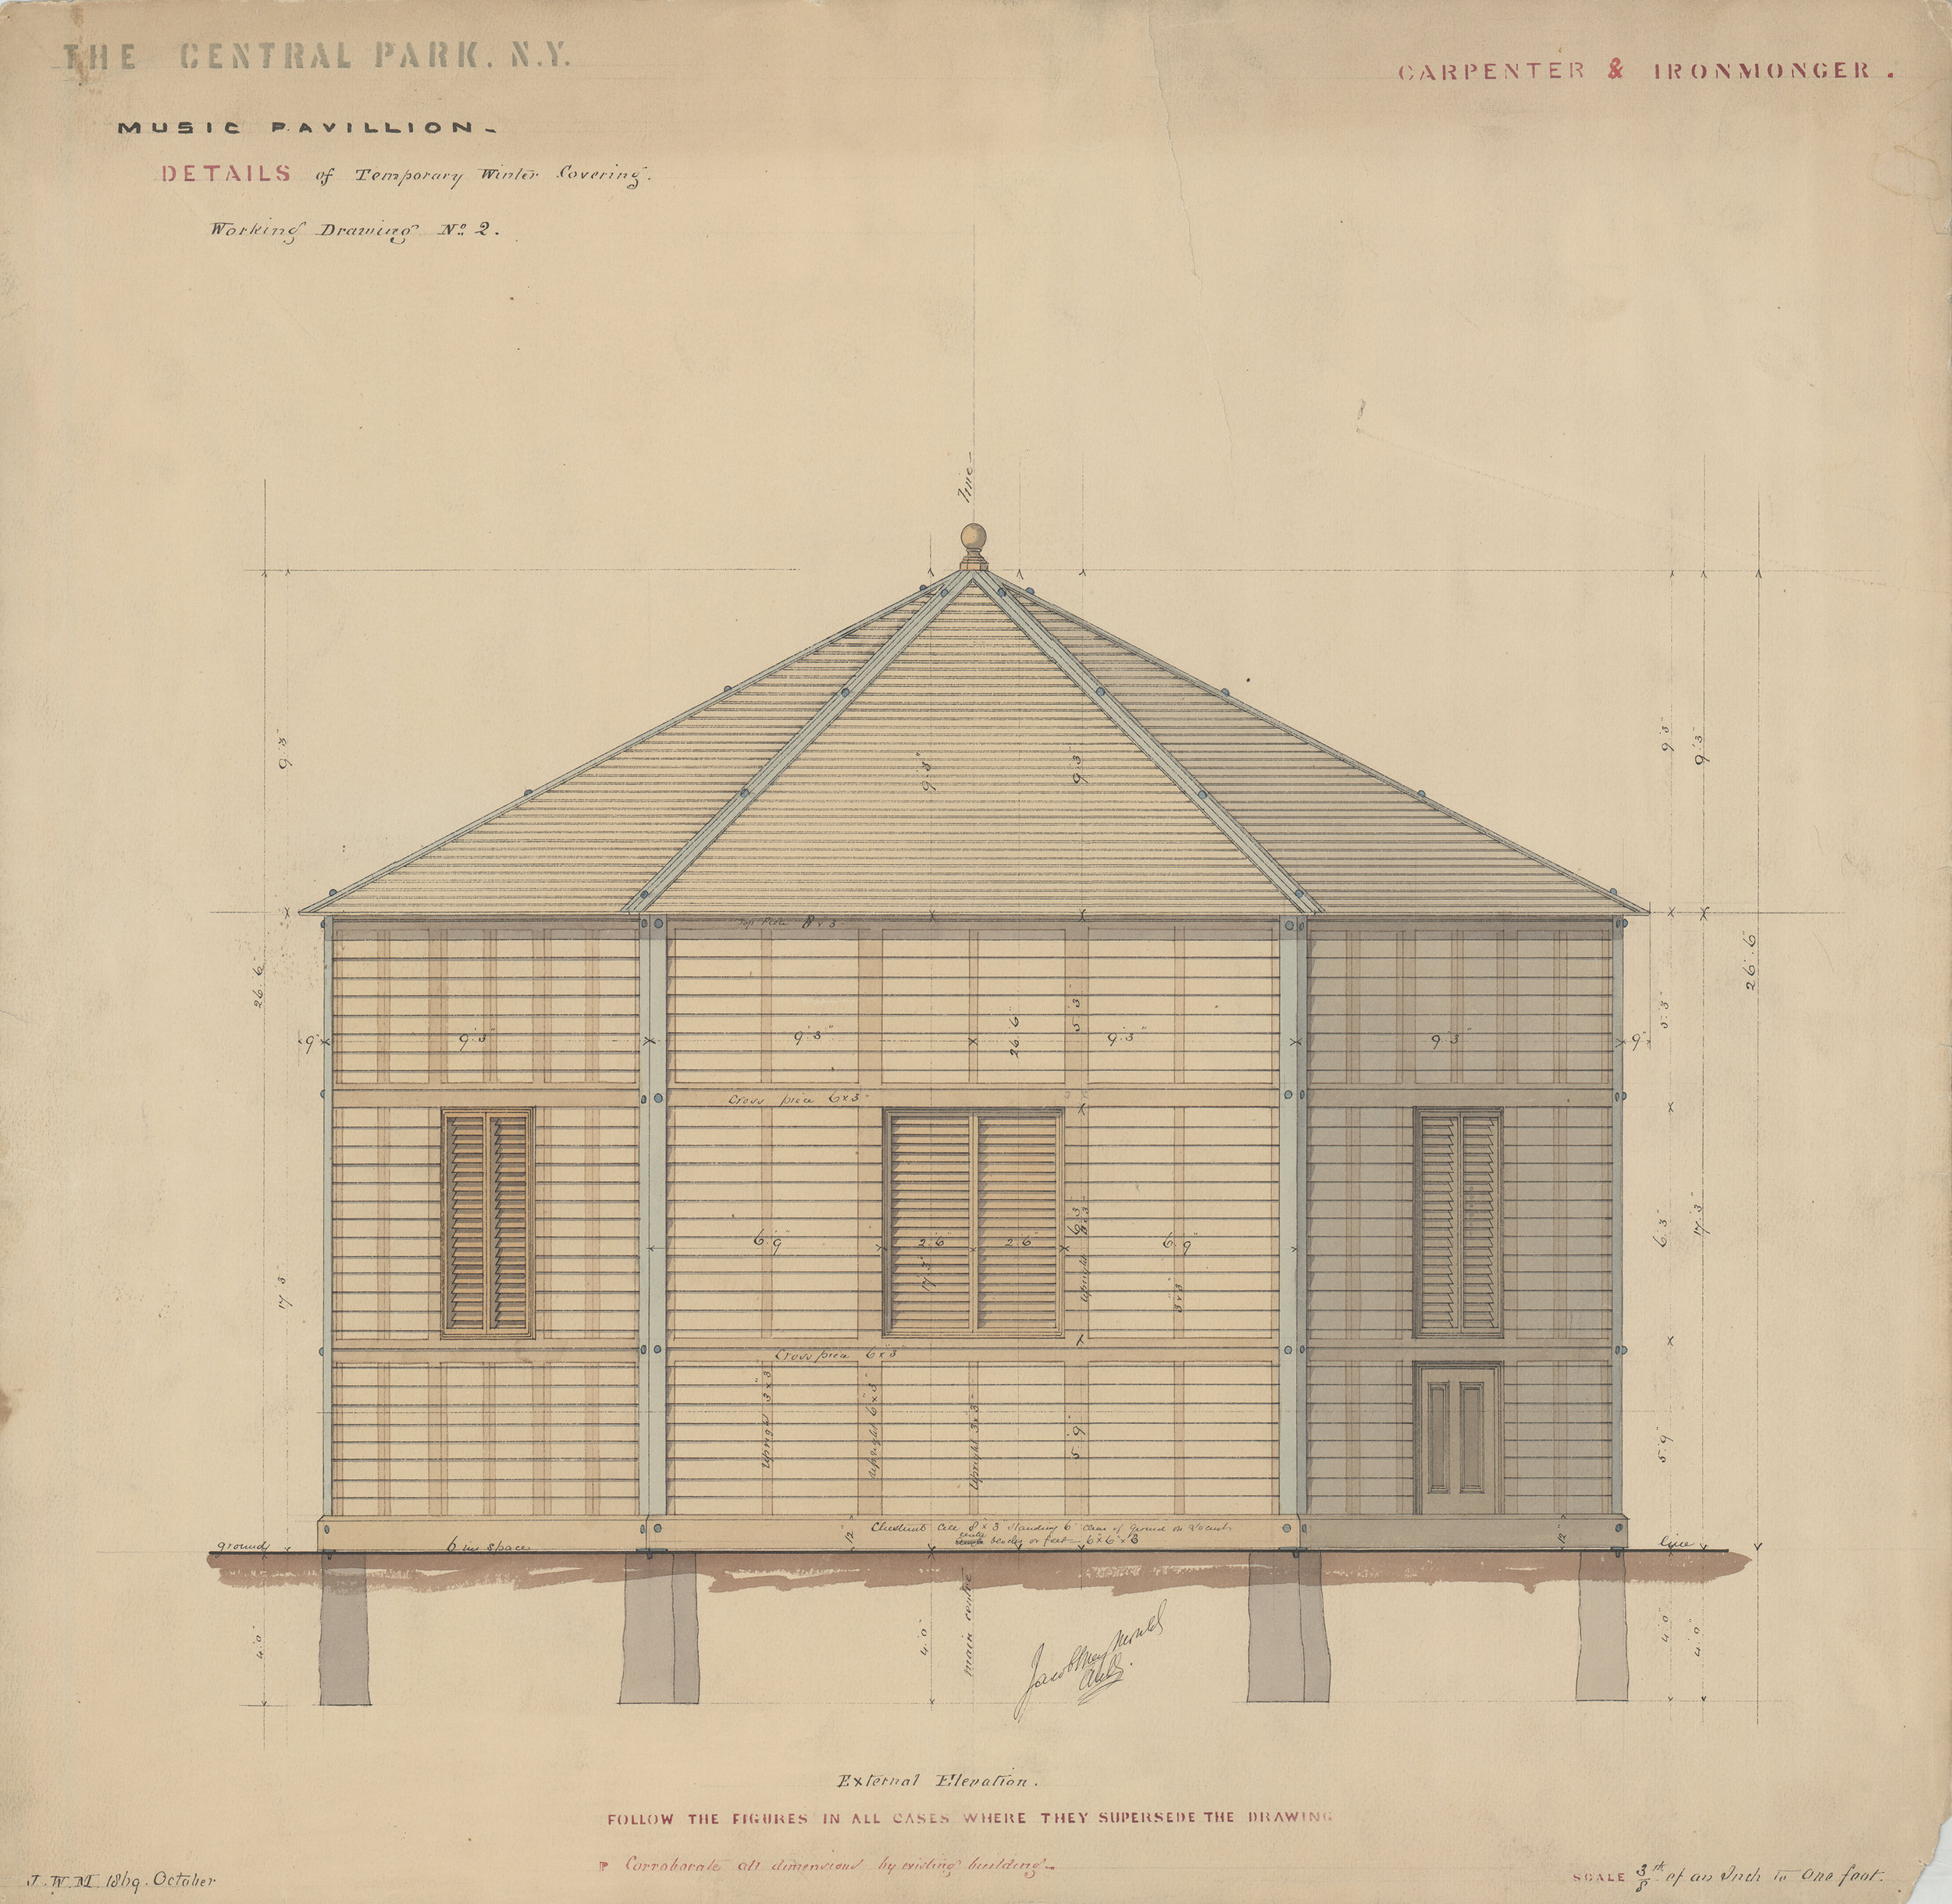 "Temporary winter covering for the Music Pavilion, carpenter's and ironmonger's contract, 1869. Black ink with colored washes on paper backed with linen, 19½ x 21"". Department of Parks Collection, NYC Municipal Archives."